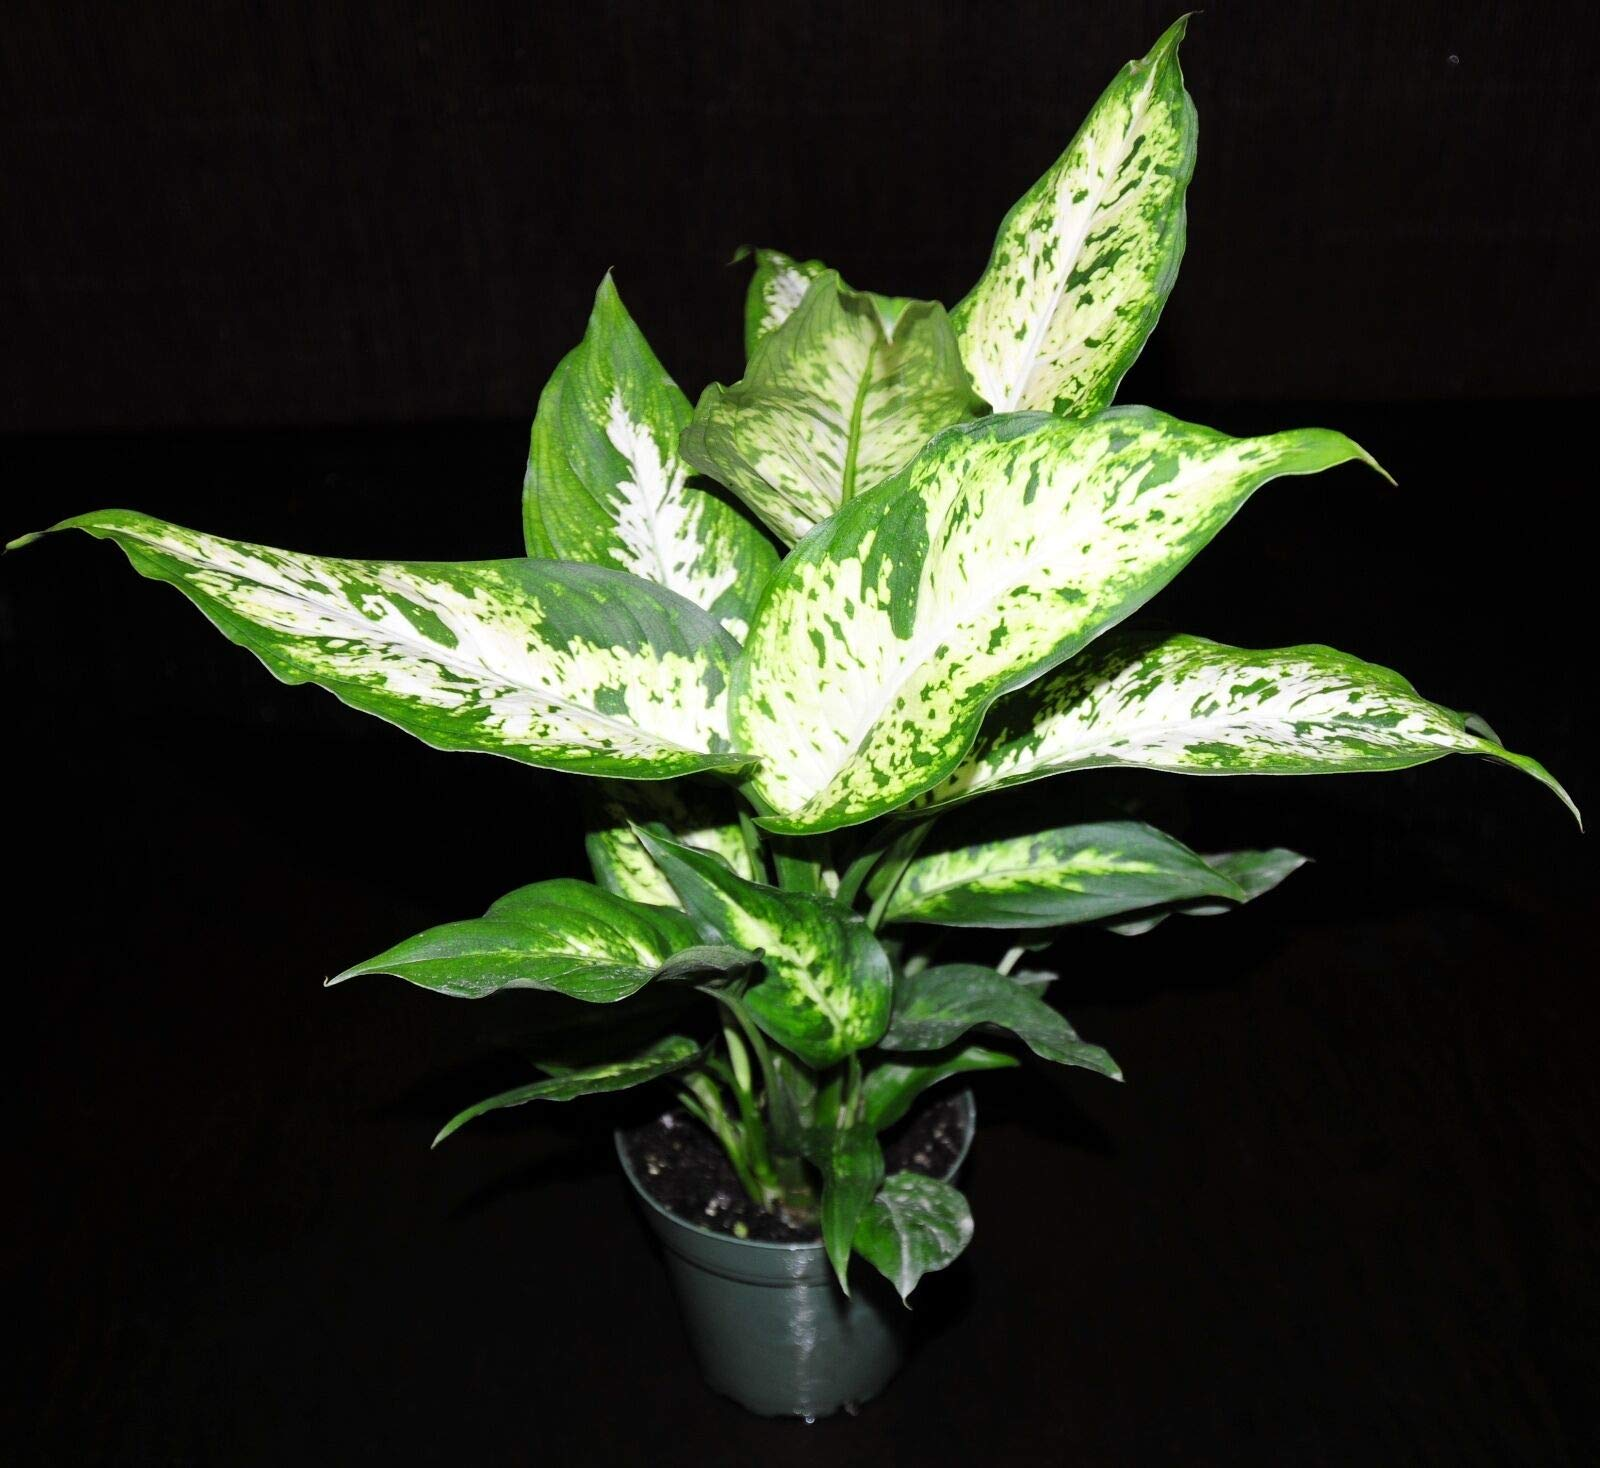 Dieffenbachia Compacta Live Tropical Houseplant Shipped in 4''Pot~Large & Healthy (Premium Quality) by AY-Premium